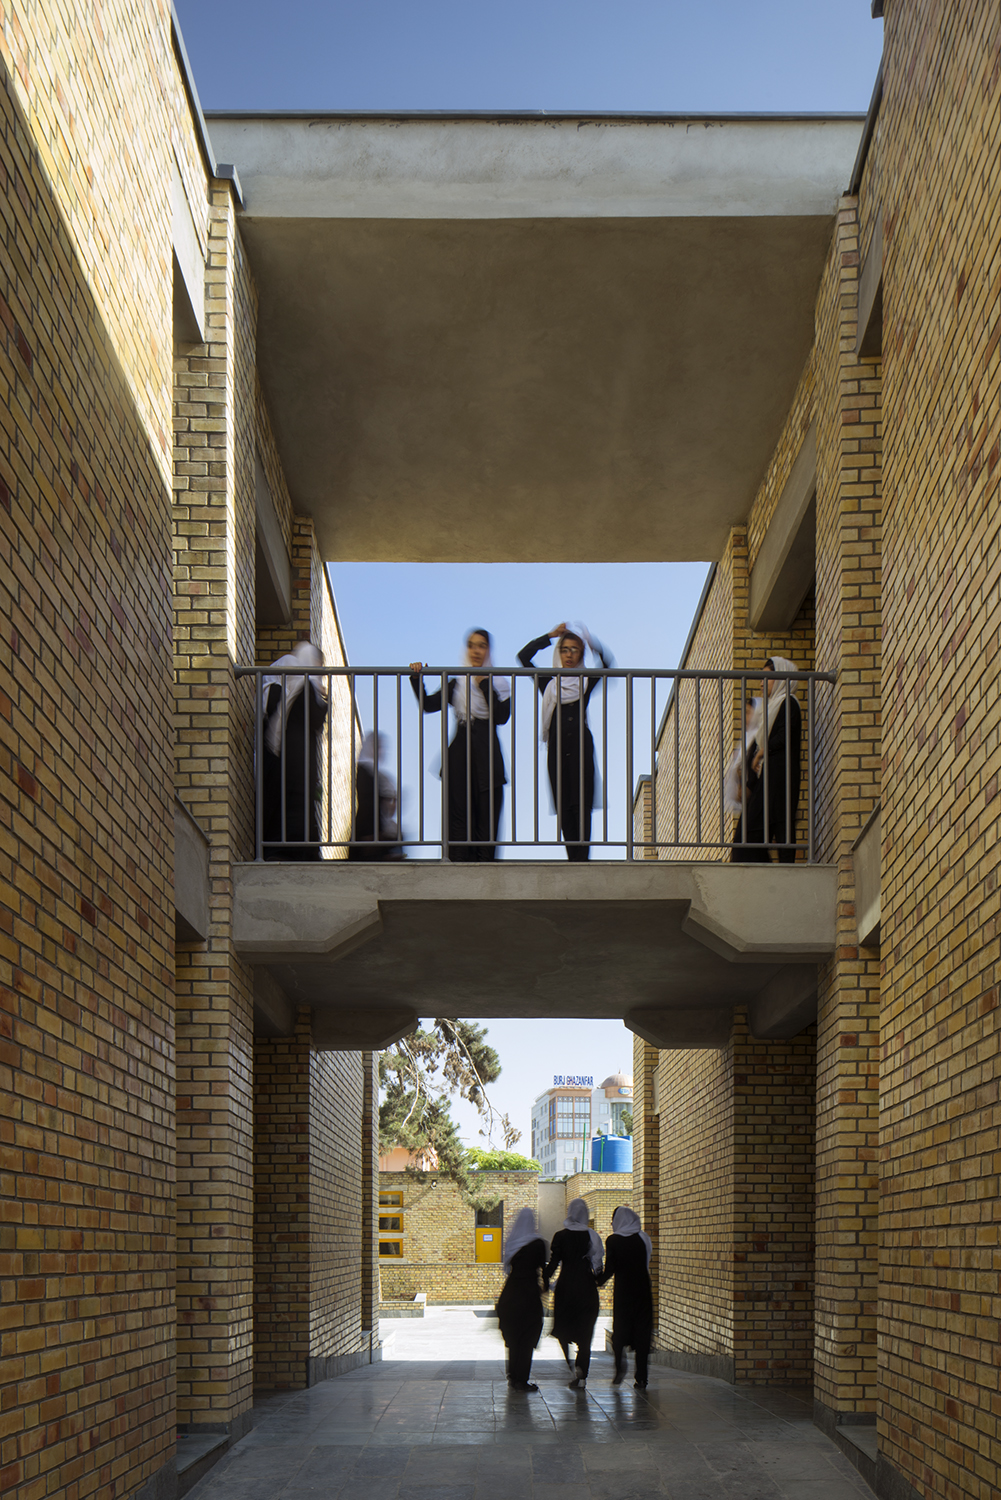 Goharkhatoon Girl School bridges@Nic Lehoux.jpg